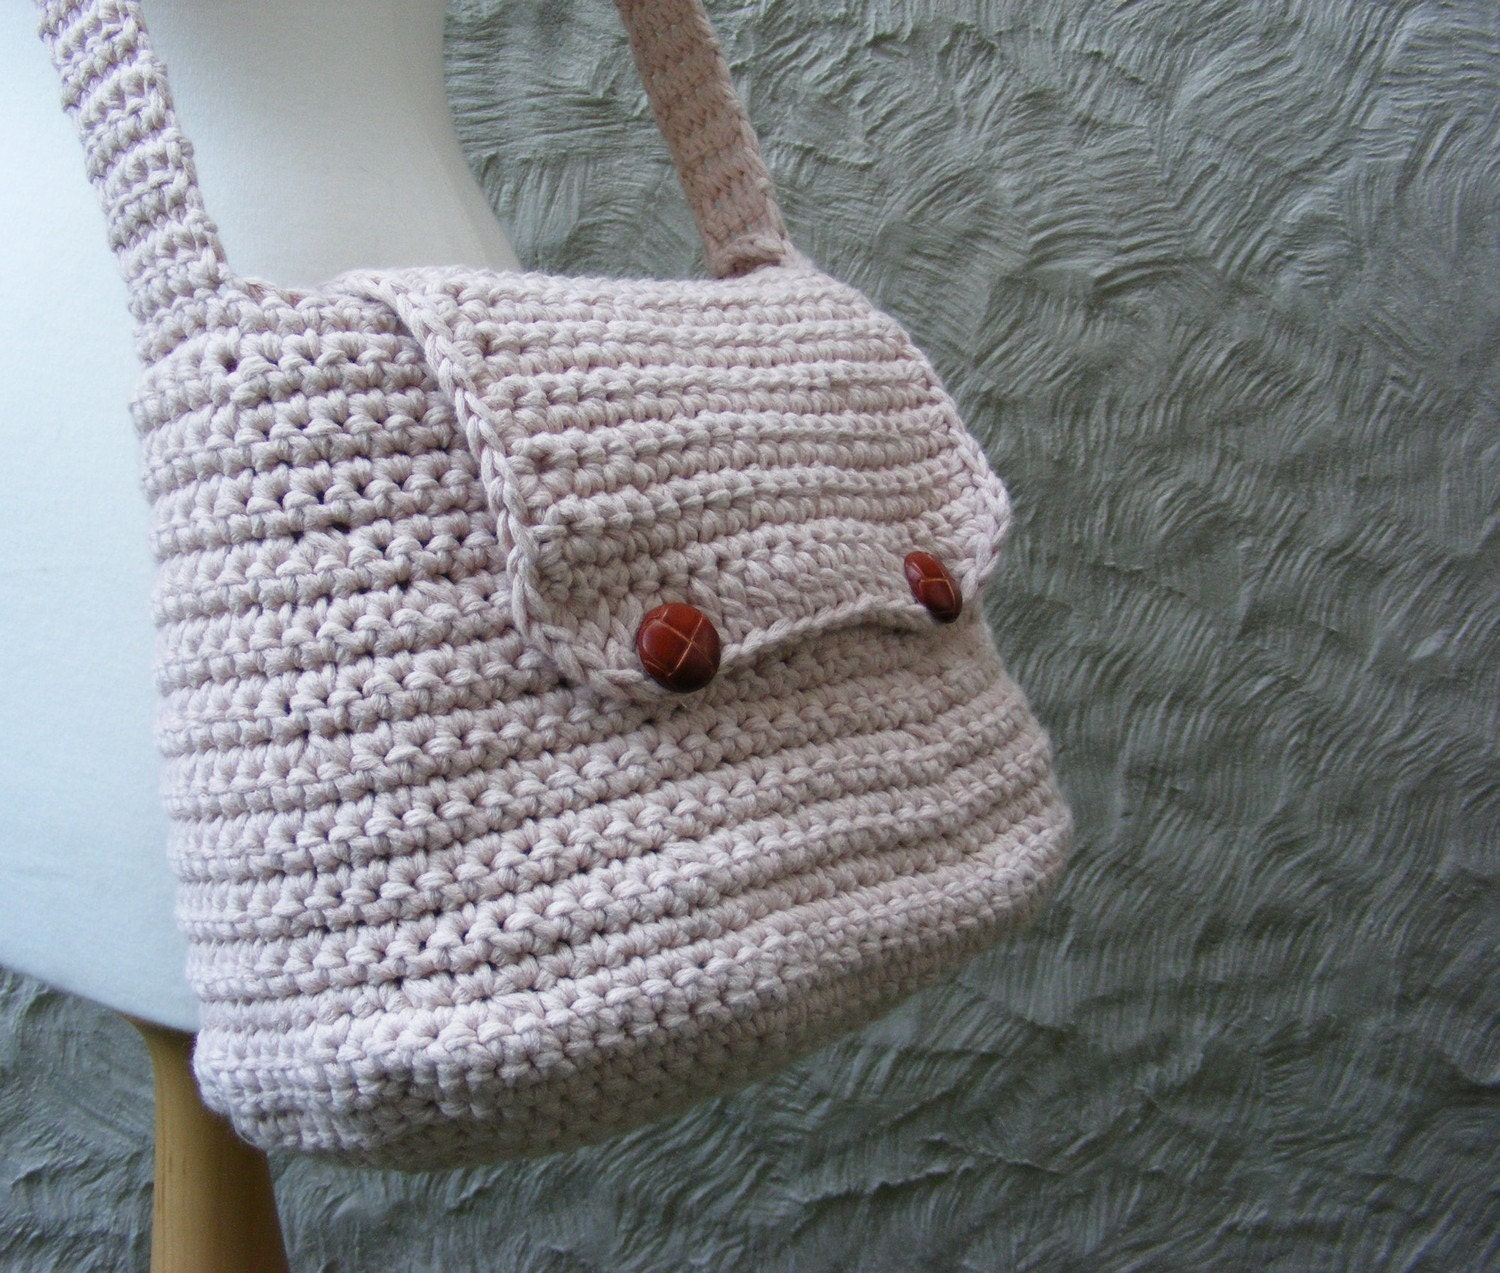 Free Crochet Pattern For Small Tote Bag : Messenger Bag Crochet Pattern / Tutorial Crochet Purse